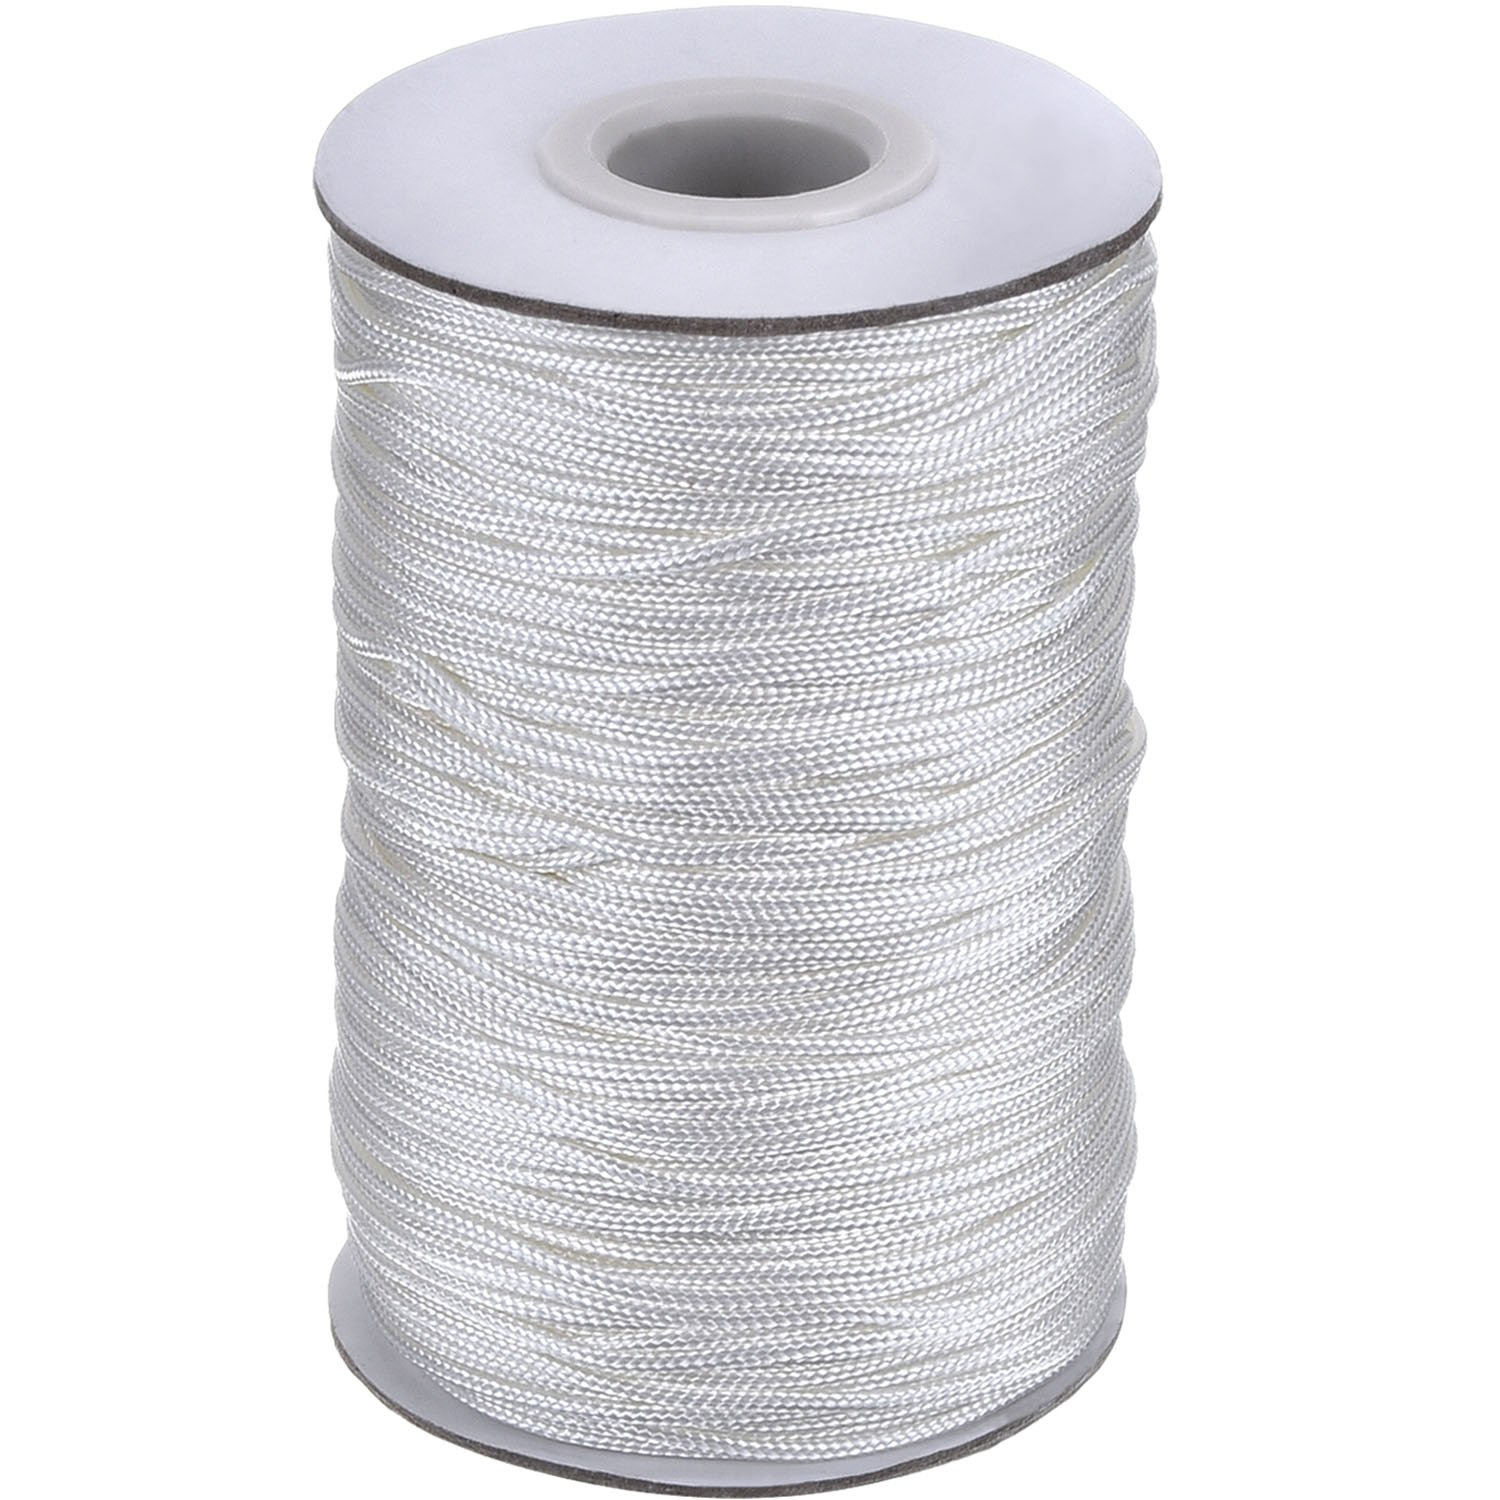 109 Yards/ Roll White Braided Lift Shade Cord for Aluminum Blind Shade, Gardening Plant and Crafts (1.4 mm) Outus 4337028221